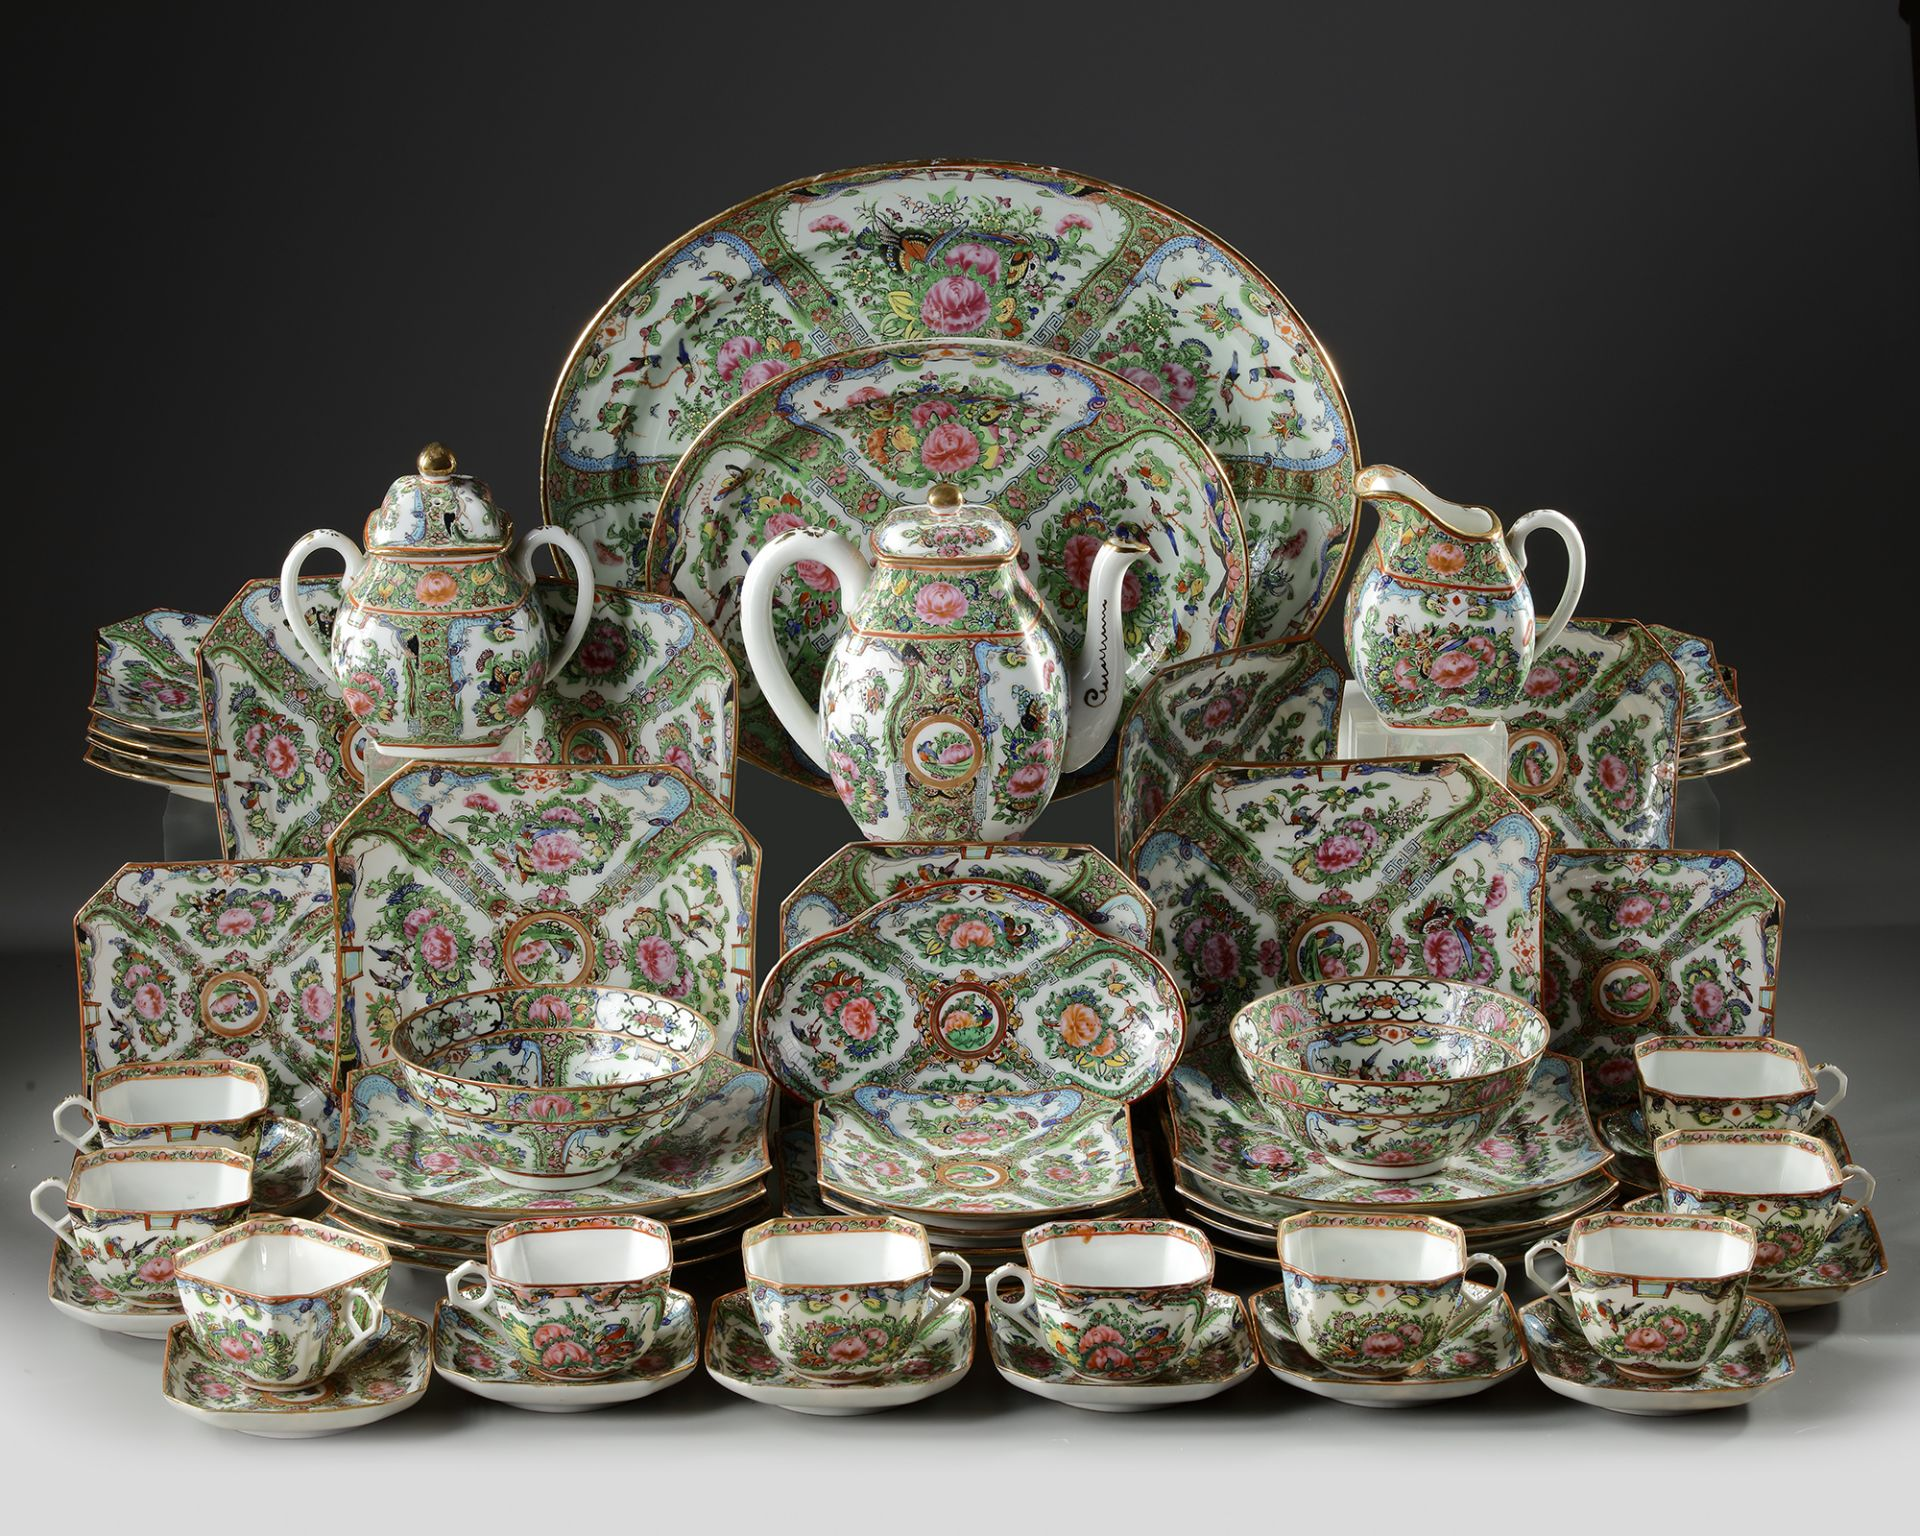 A CANTONESE PORCELAIN TABLEWARE SET, CHINA, 20TH CENTURY - Image 2 of 2